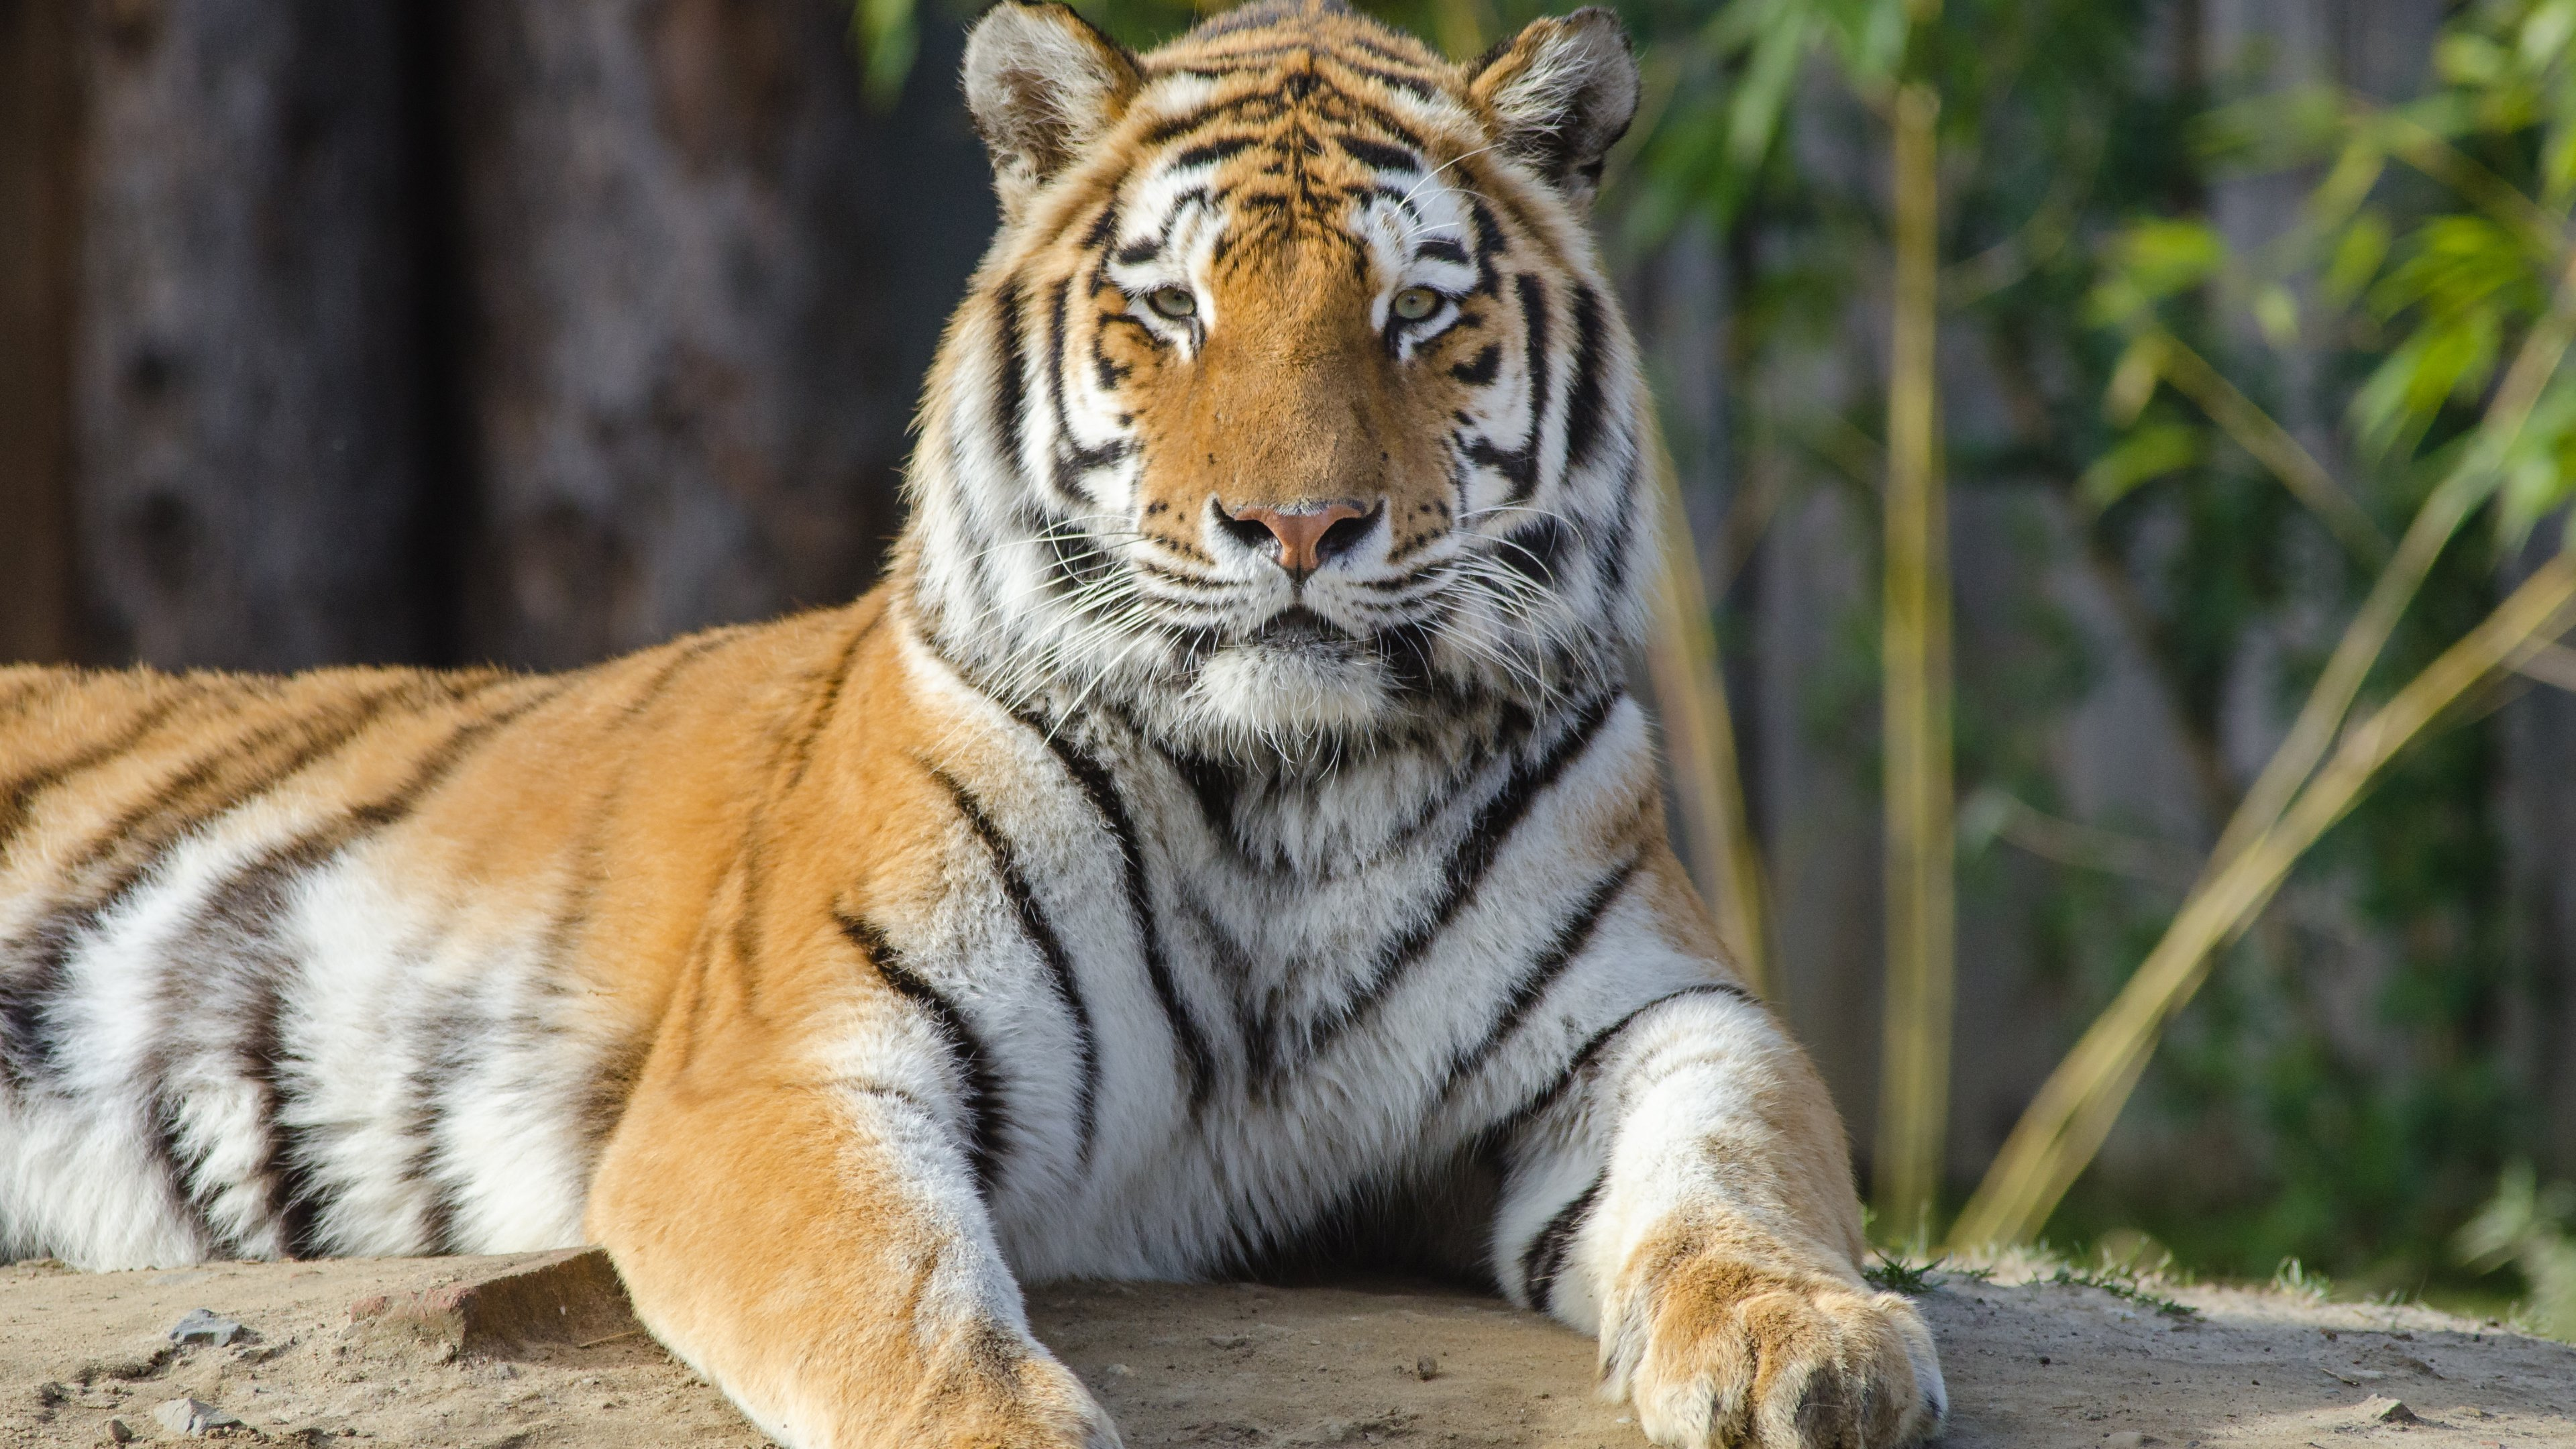 Tiger at a zoo 4k ultra hd wallpaper background image - Ultra hd animal wallpapers ...